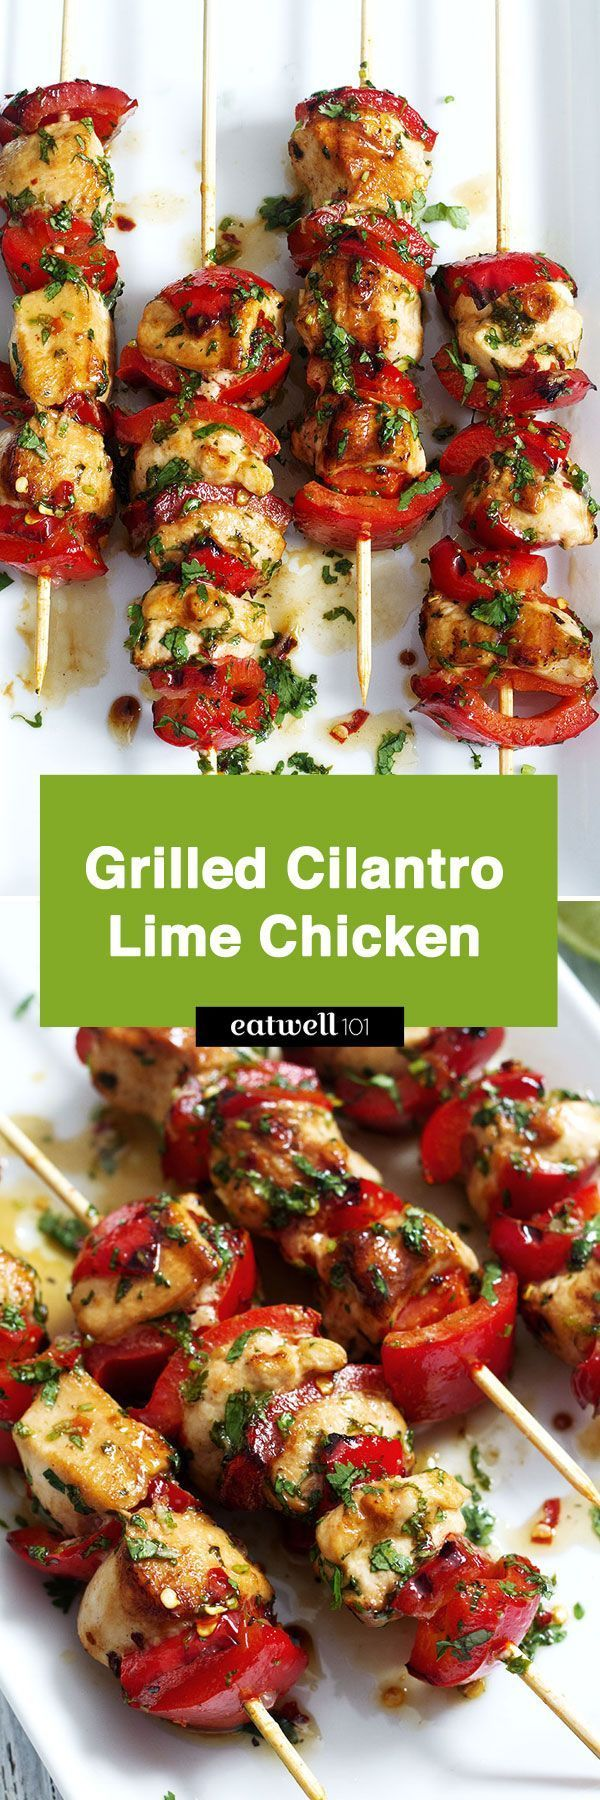 A savory and nourishing grilled chicken perfect recipe for your Summer cookouts. Chicken breasts seasoned in salty, sweet, sour, and spicy marinade (made with Cilantro,lemon juice, honey and Chili)�